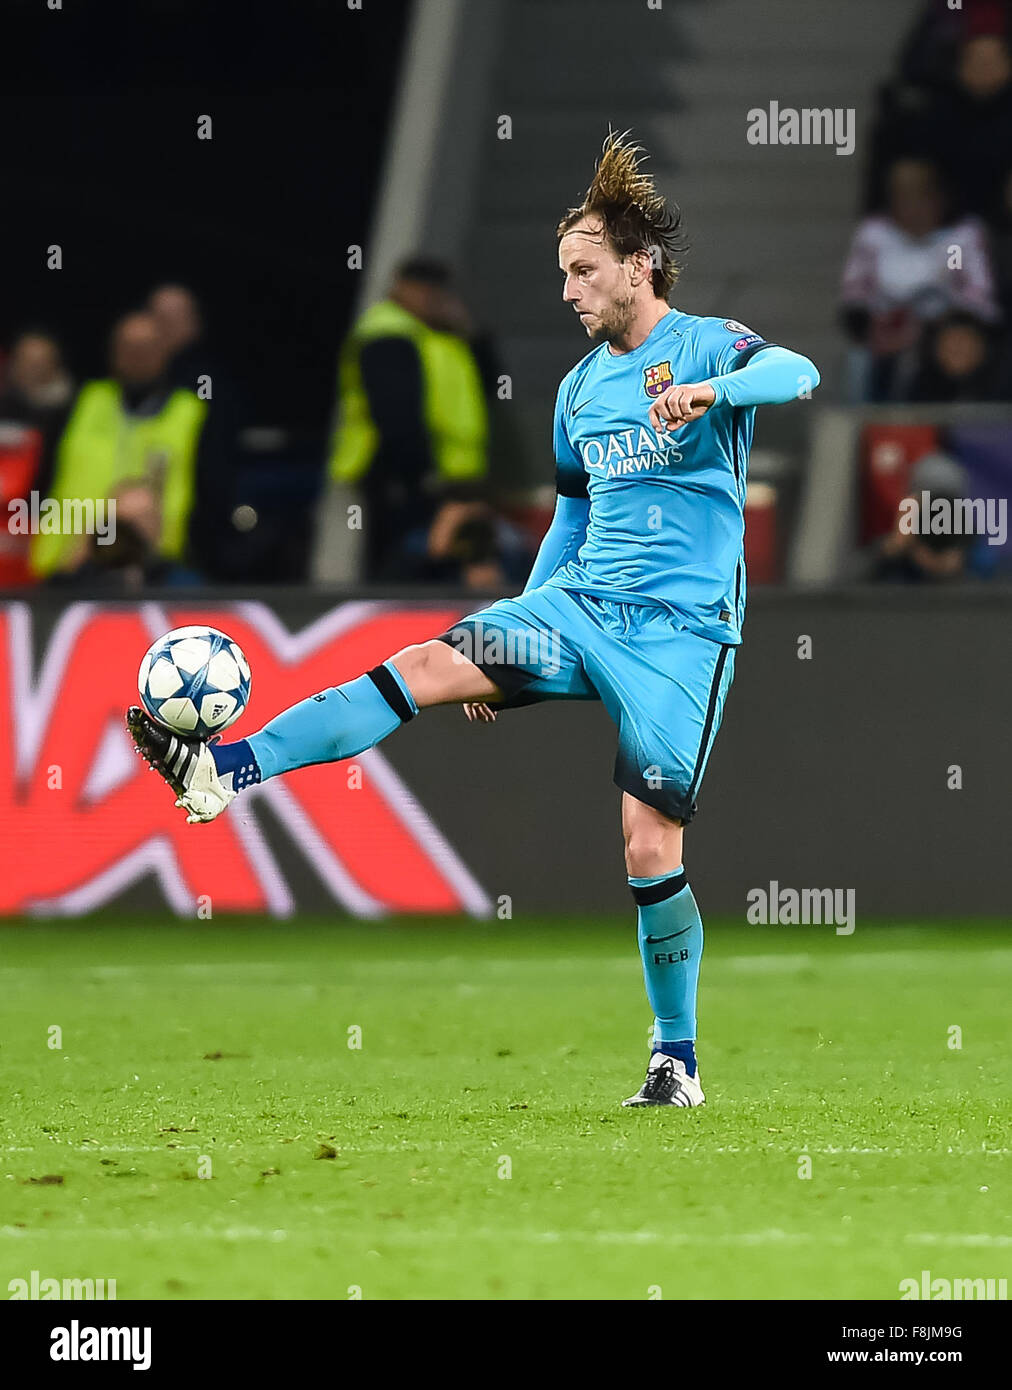 Barcelona s Ivan Rakitic in action during the UEFA Champions